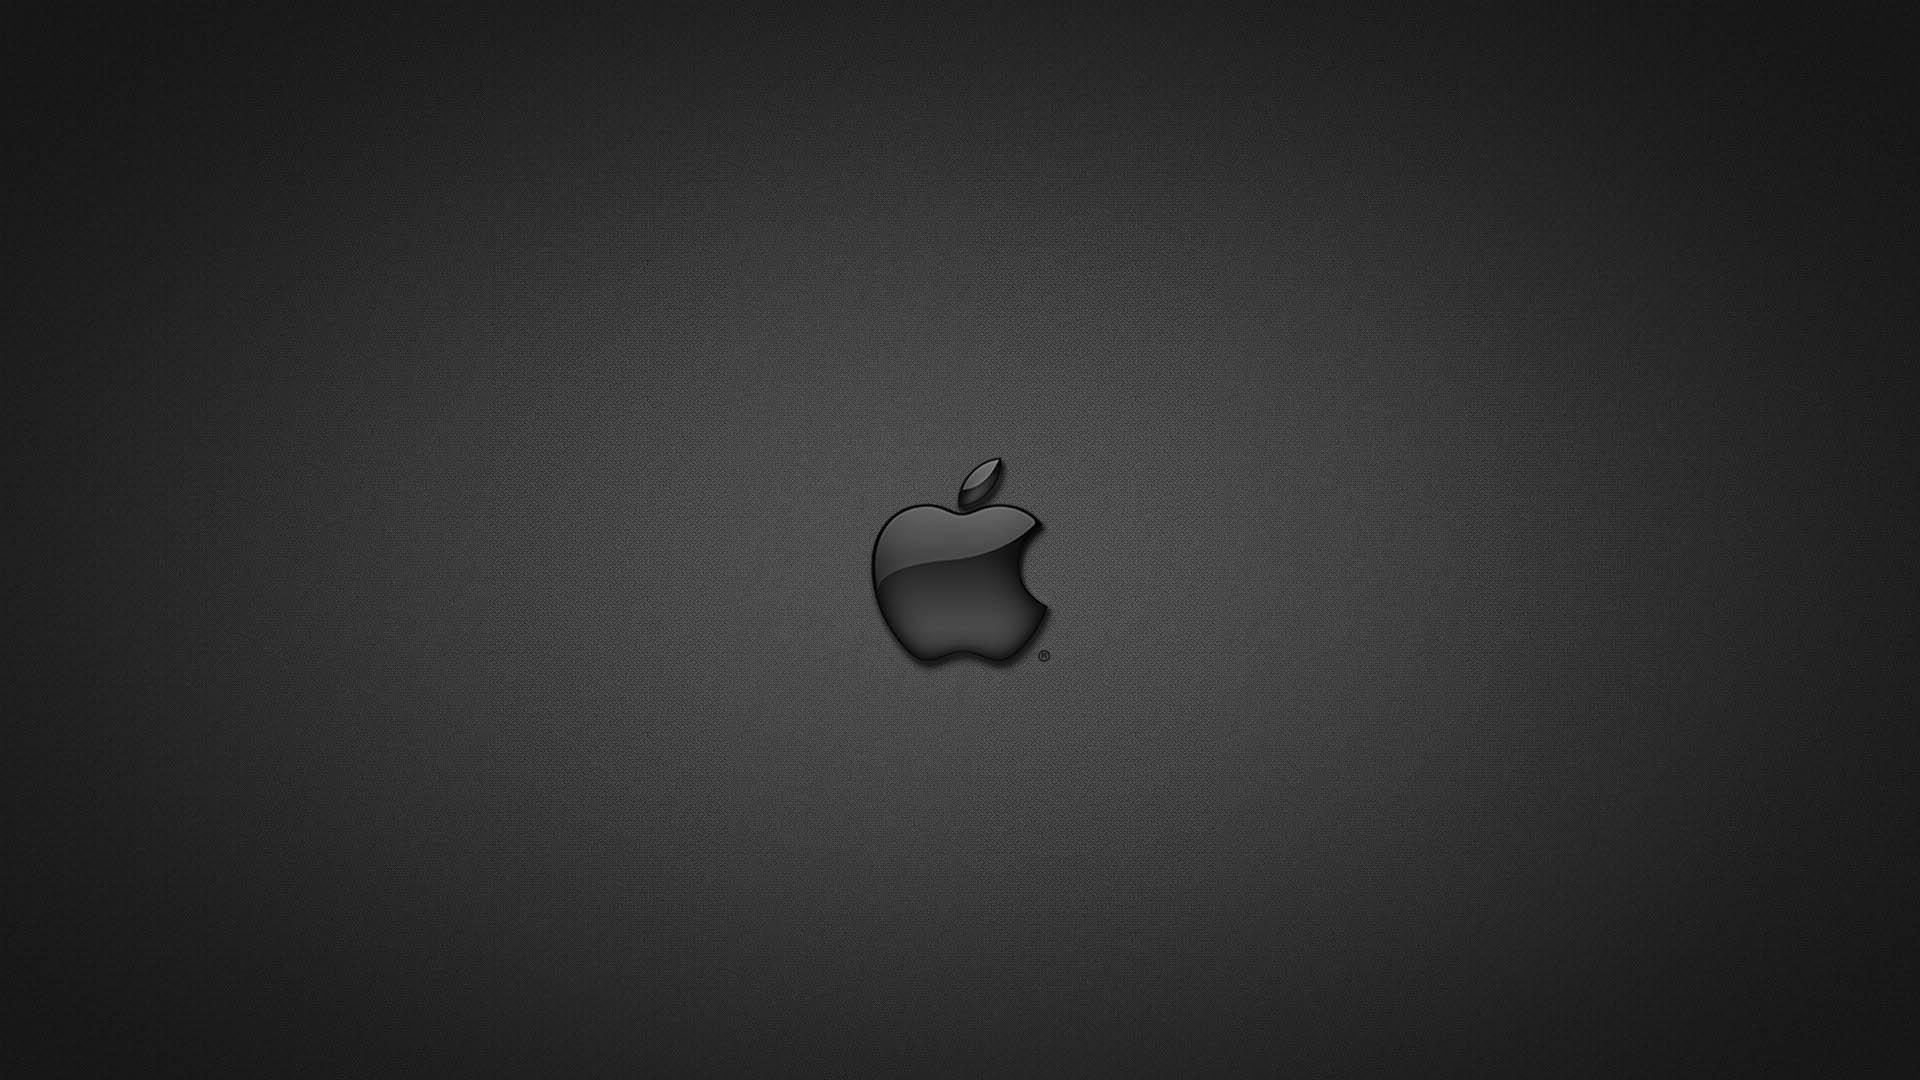 Apple Black HD Wallpaper